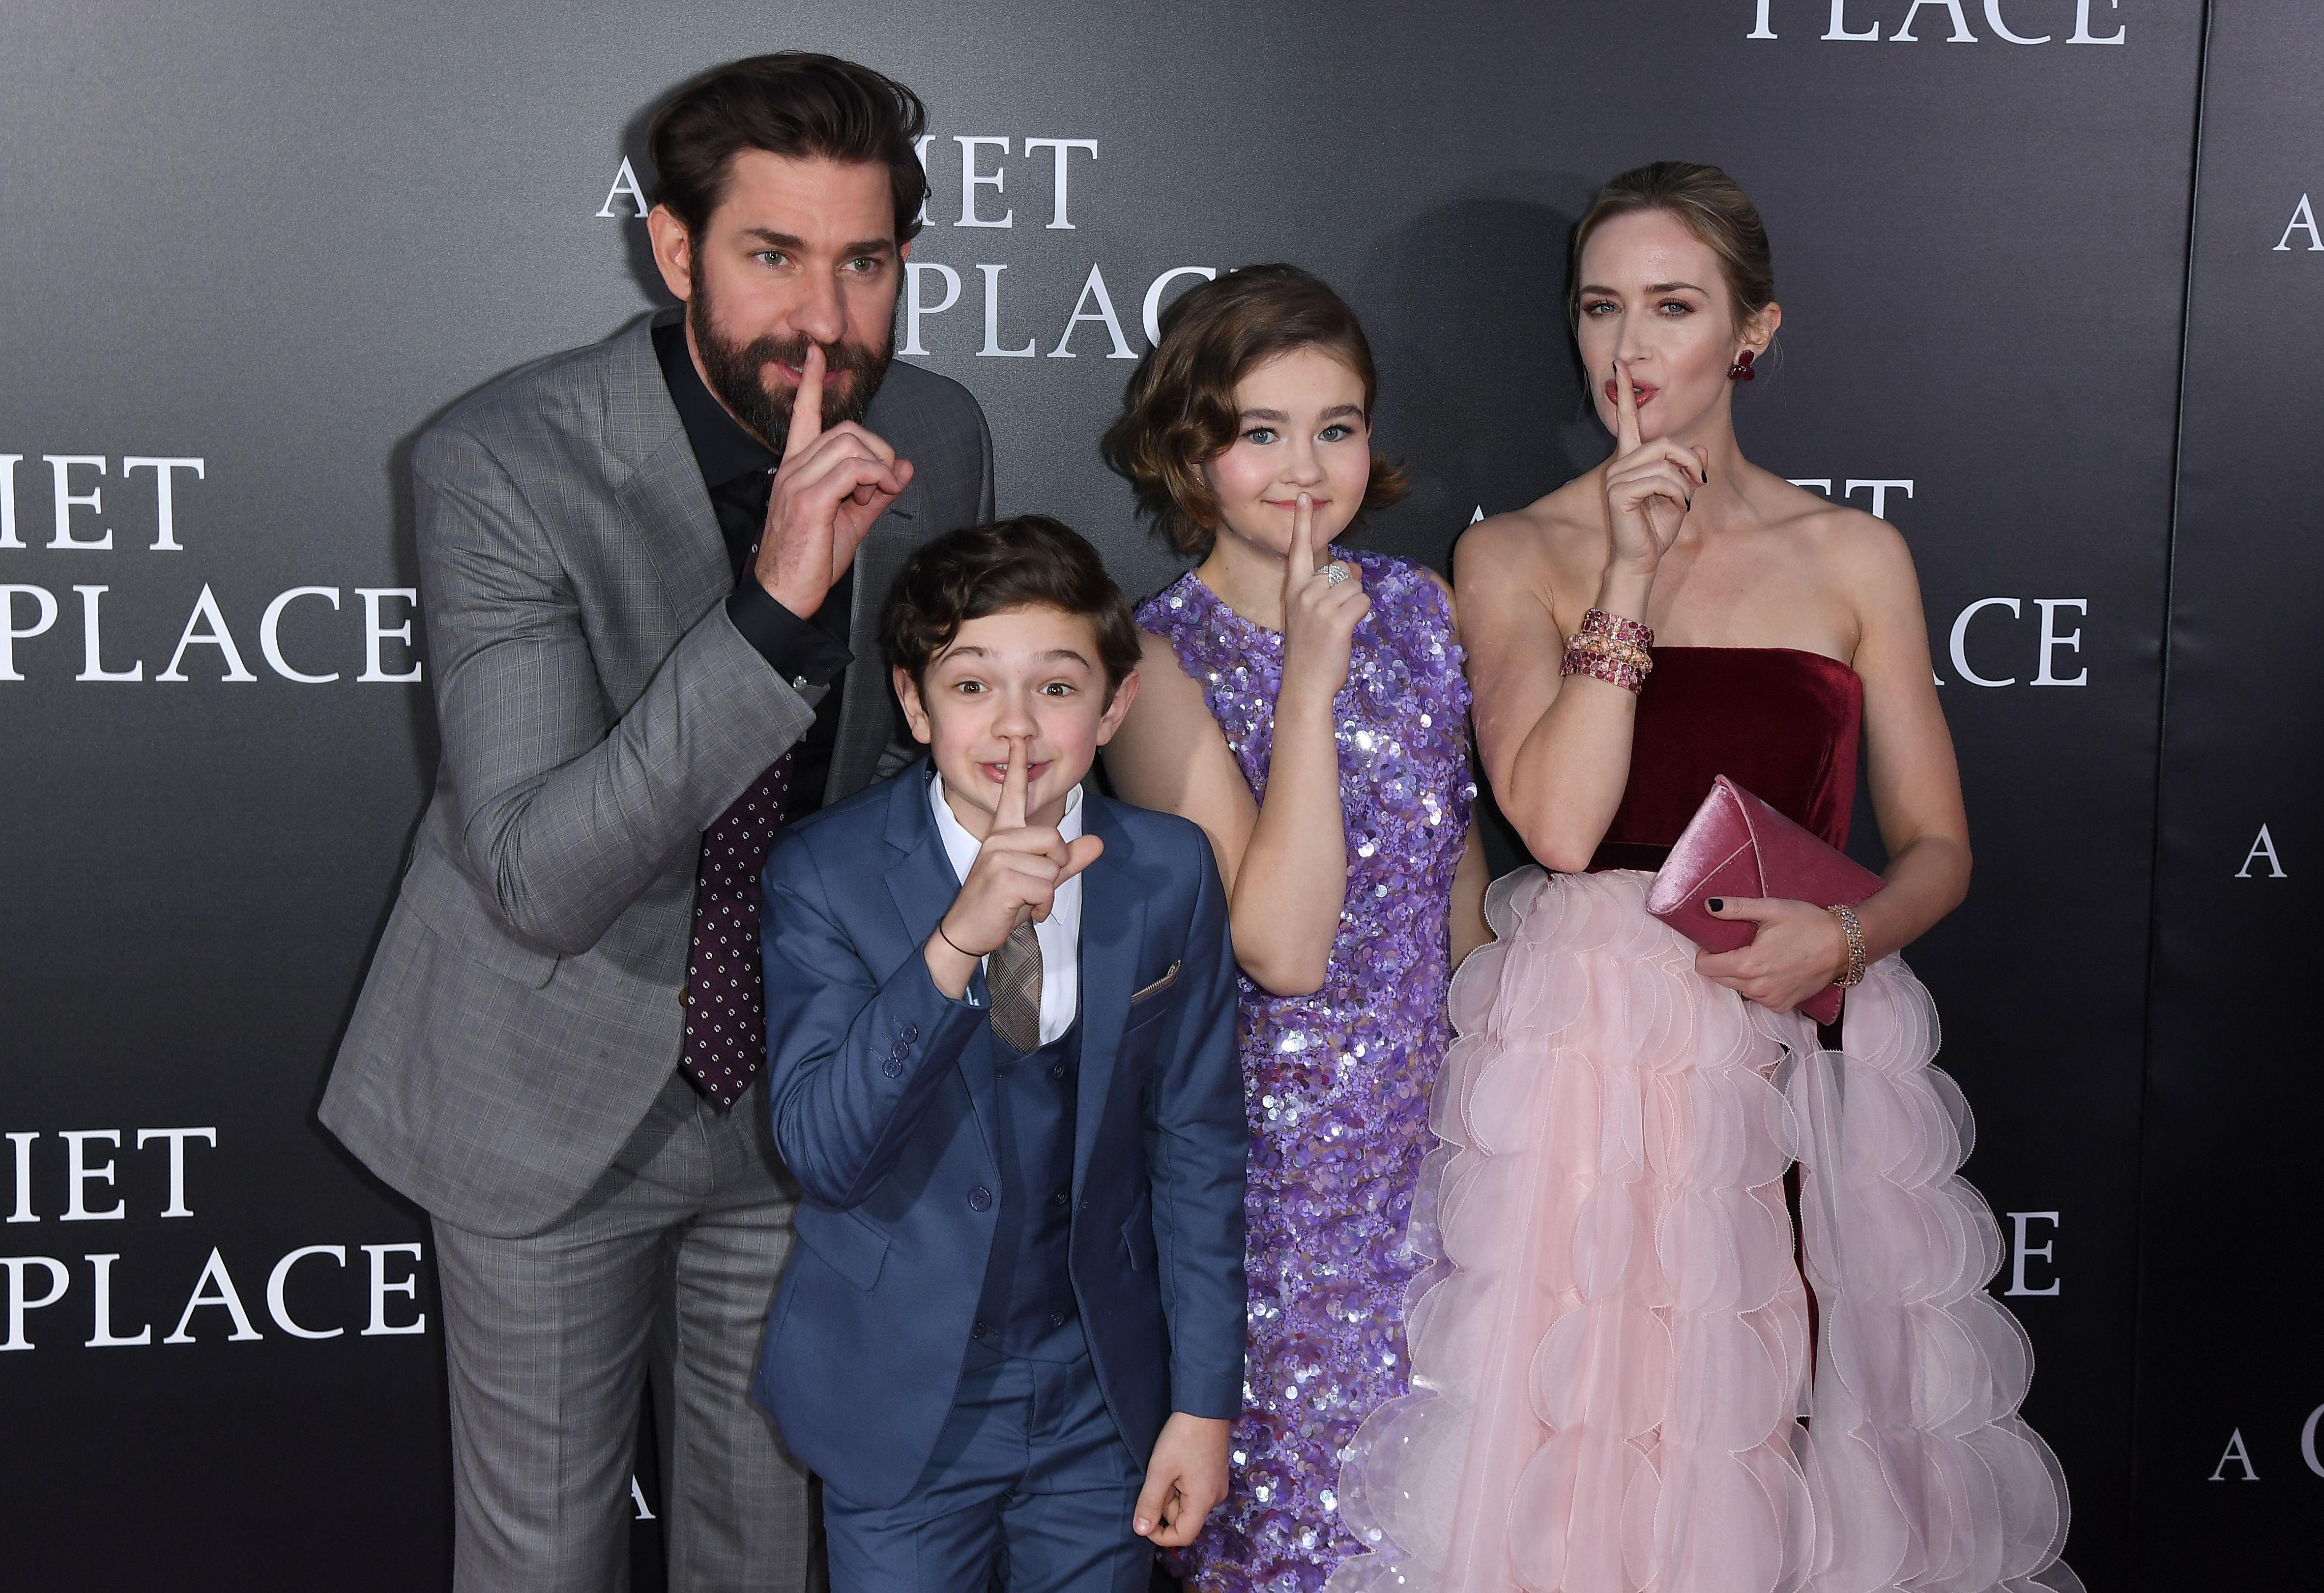 (L-R) John Krasinski, Noah Jupe, Millicent Simmonds and Emily Blunt attend the Paramount Pictures premiere for 'A Quiet Place' at AMC Lincoln Square Theater on April 2, 2018 in New York City. / AFP PHOTO / ANGELA WEISS        (Photo credit should read ANGELA WEISS/AFP/Getty Images)